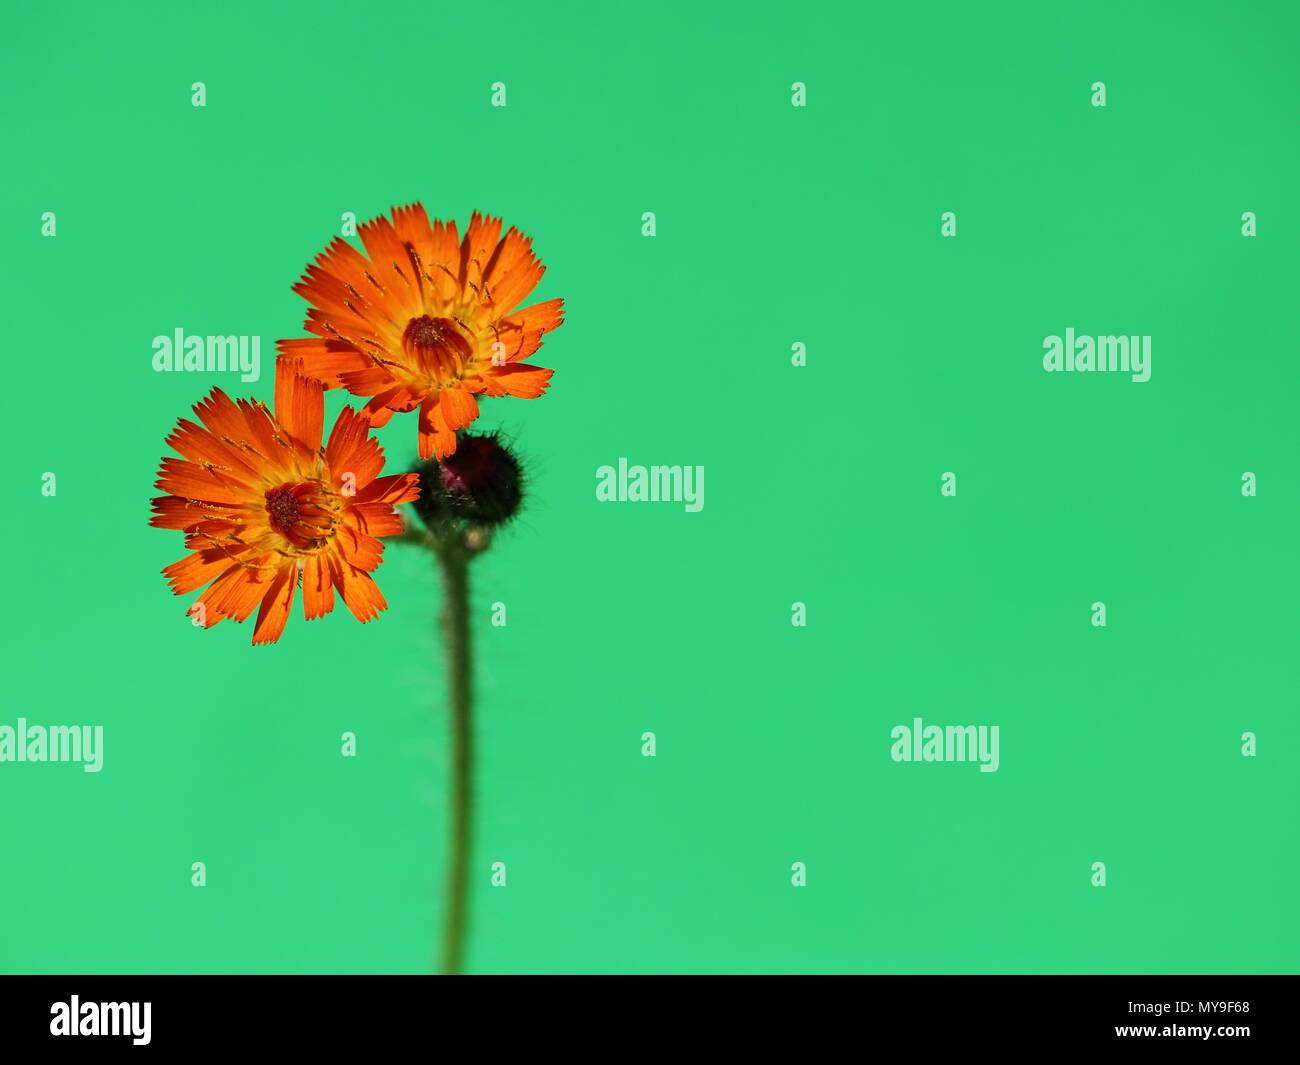 Orange colored flower against mint green background. Vibrant orange colored  wildflower, orange hawk bit, pure summer floral template with copy space. - Stock Image